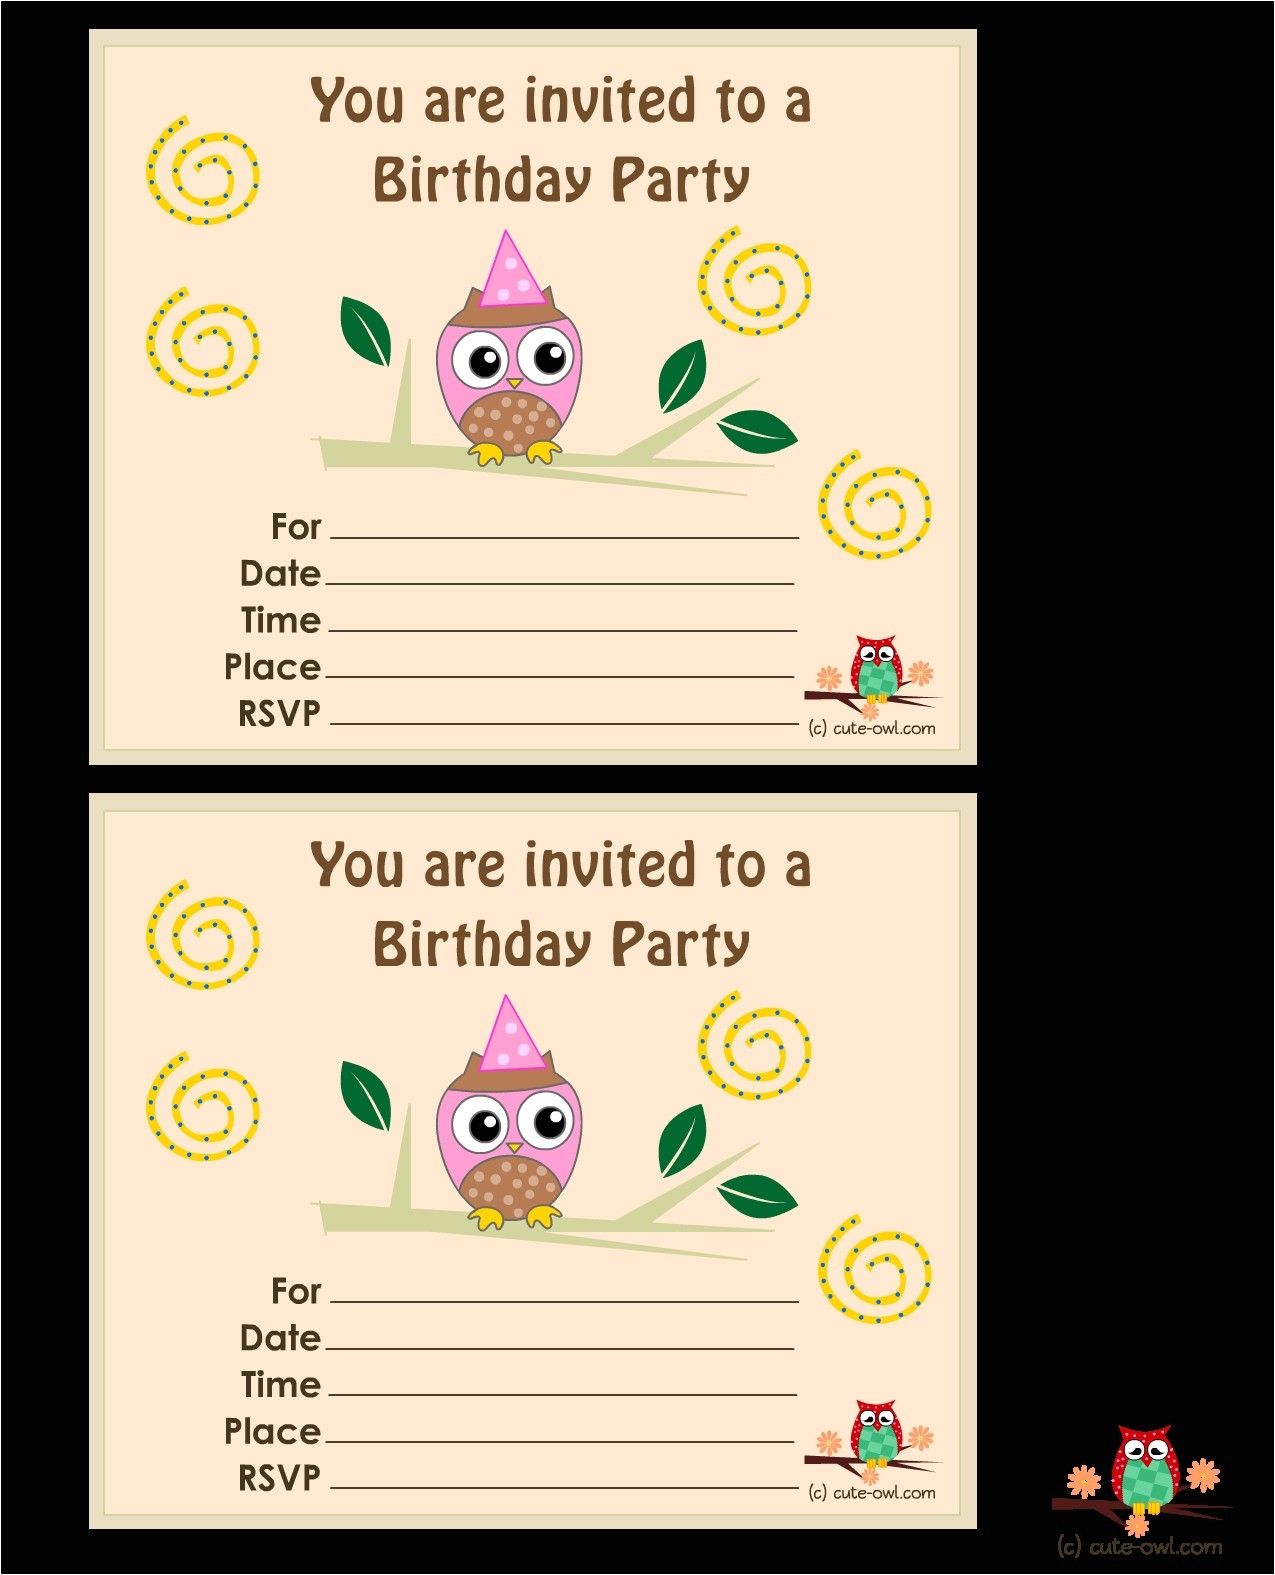 free printable personalized birthday invitation cards elegant top pilation free printable birthday party invitations for